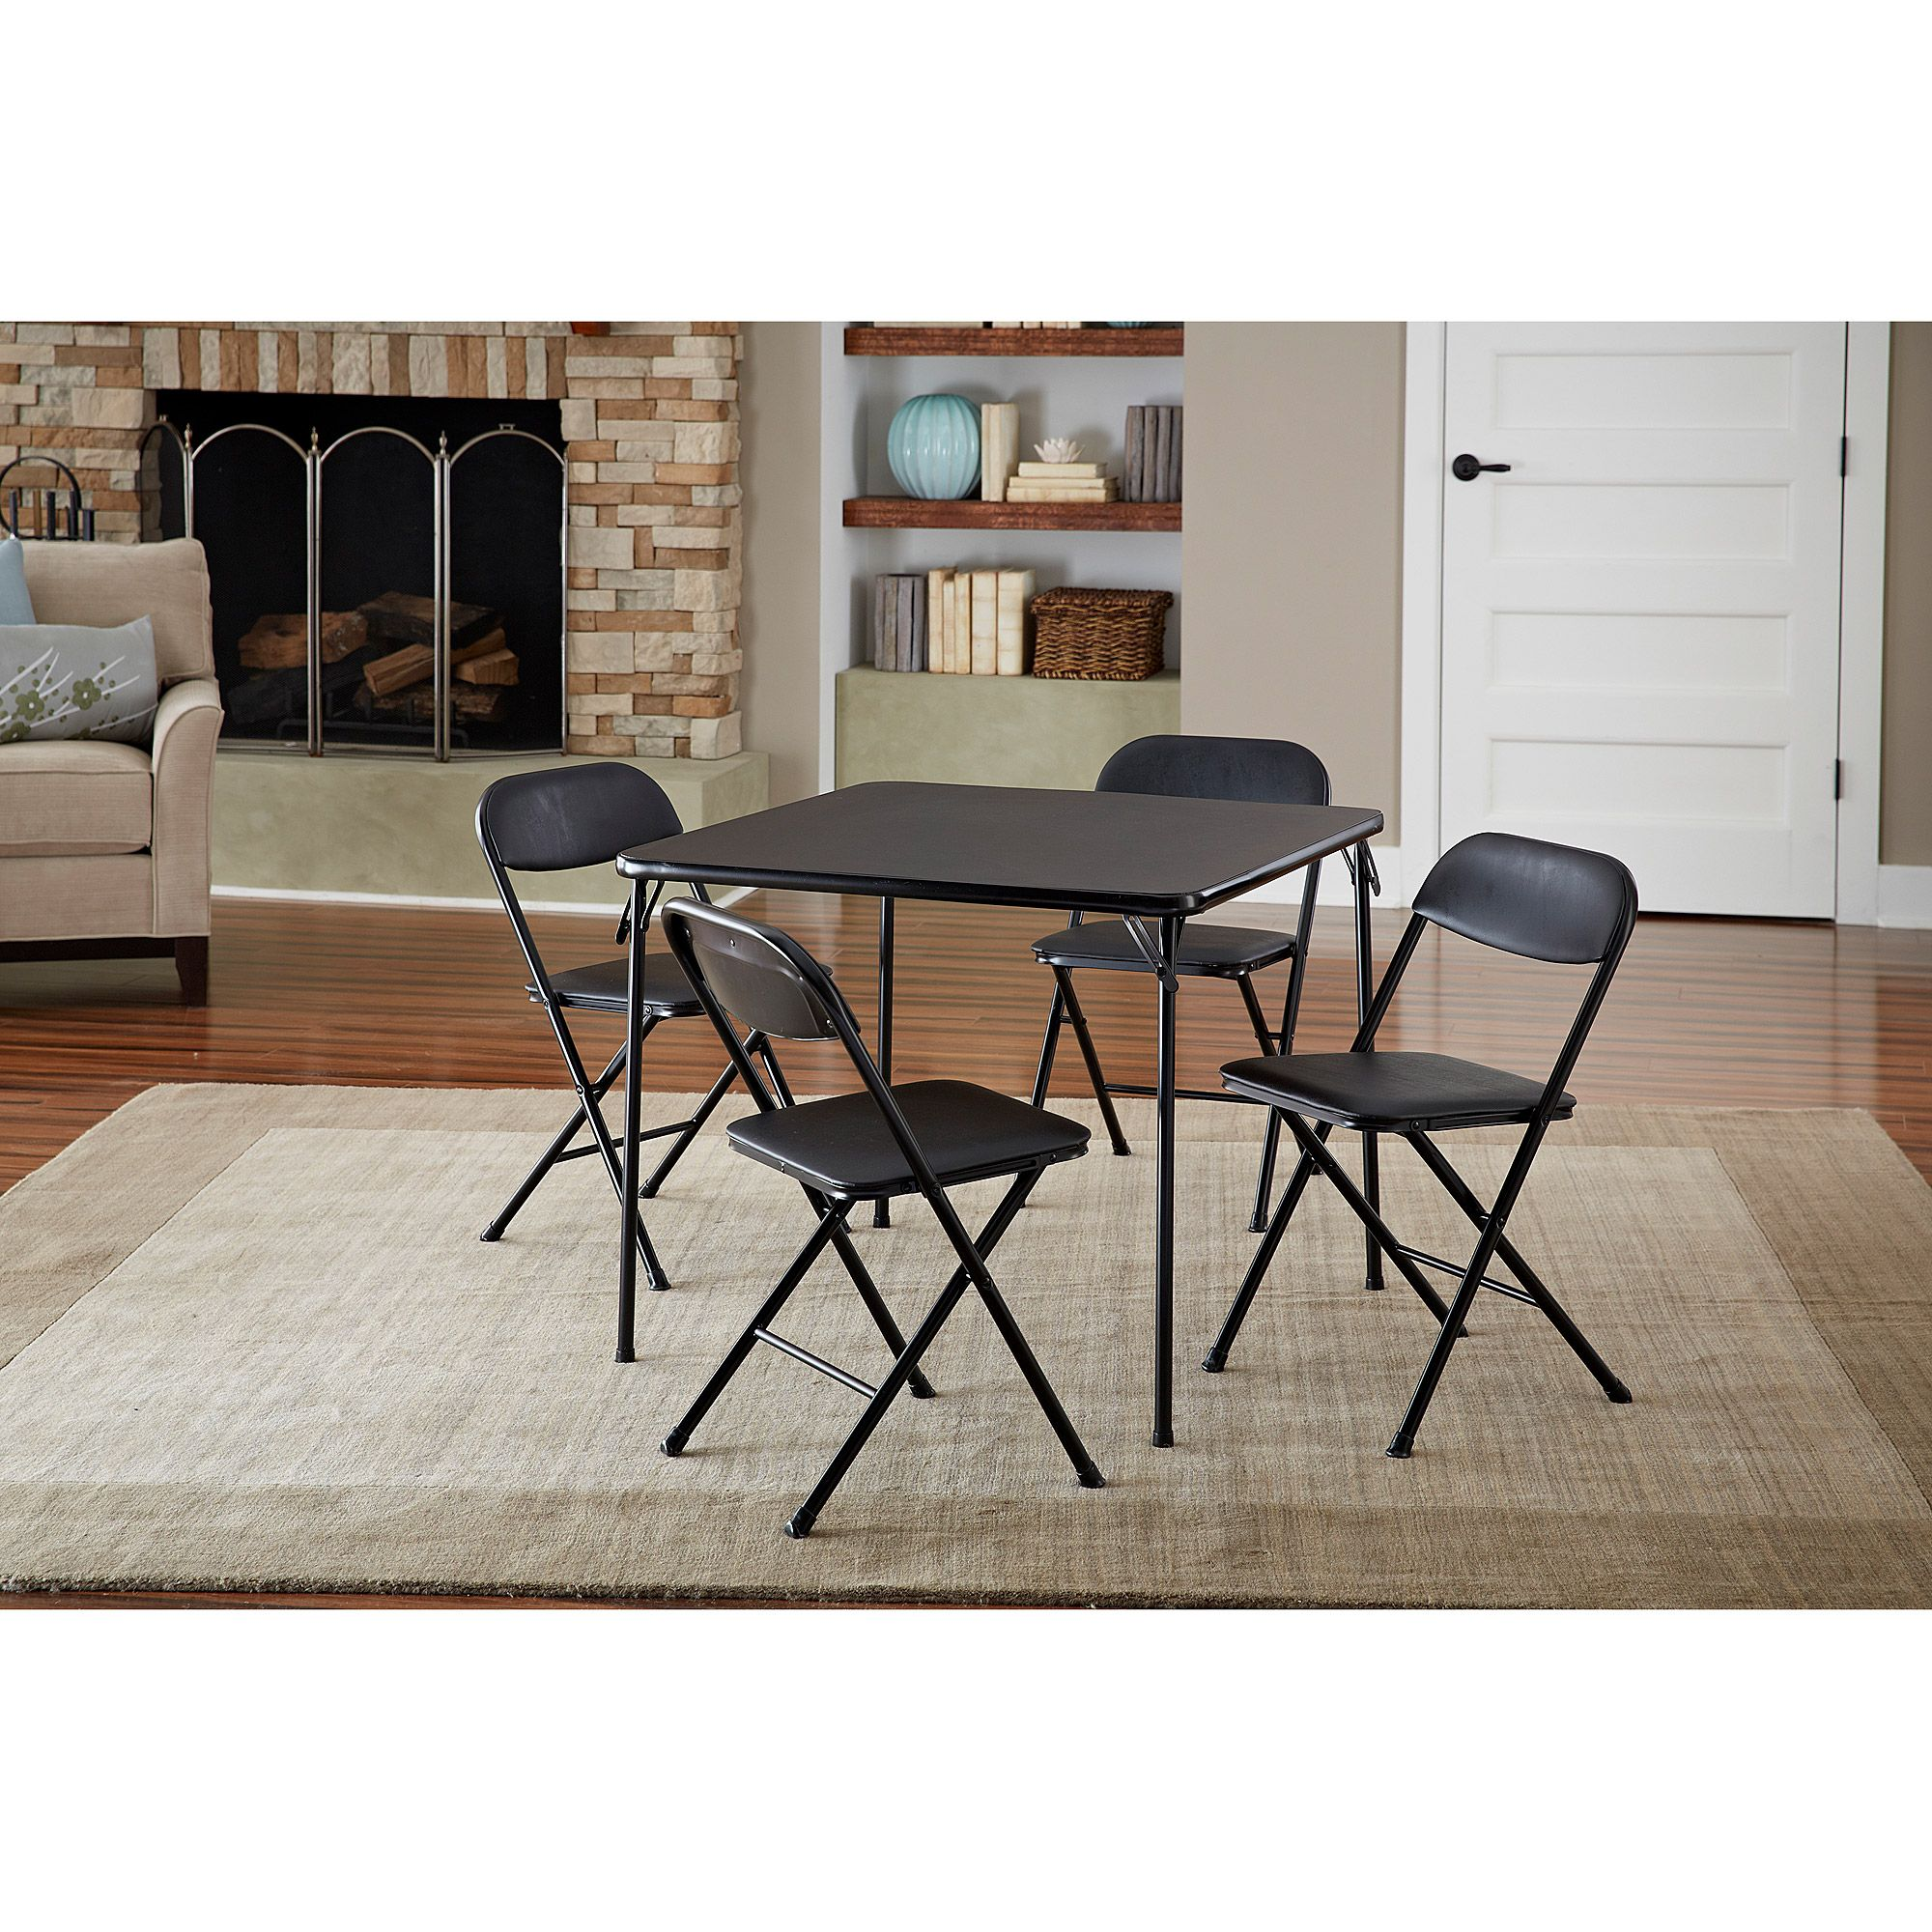 - Cosco 5-Piece Card Table Set, Black Table And Chair Sets, Card